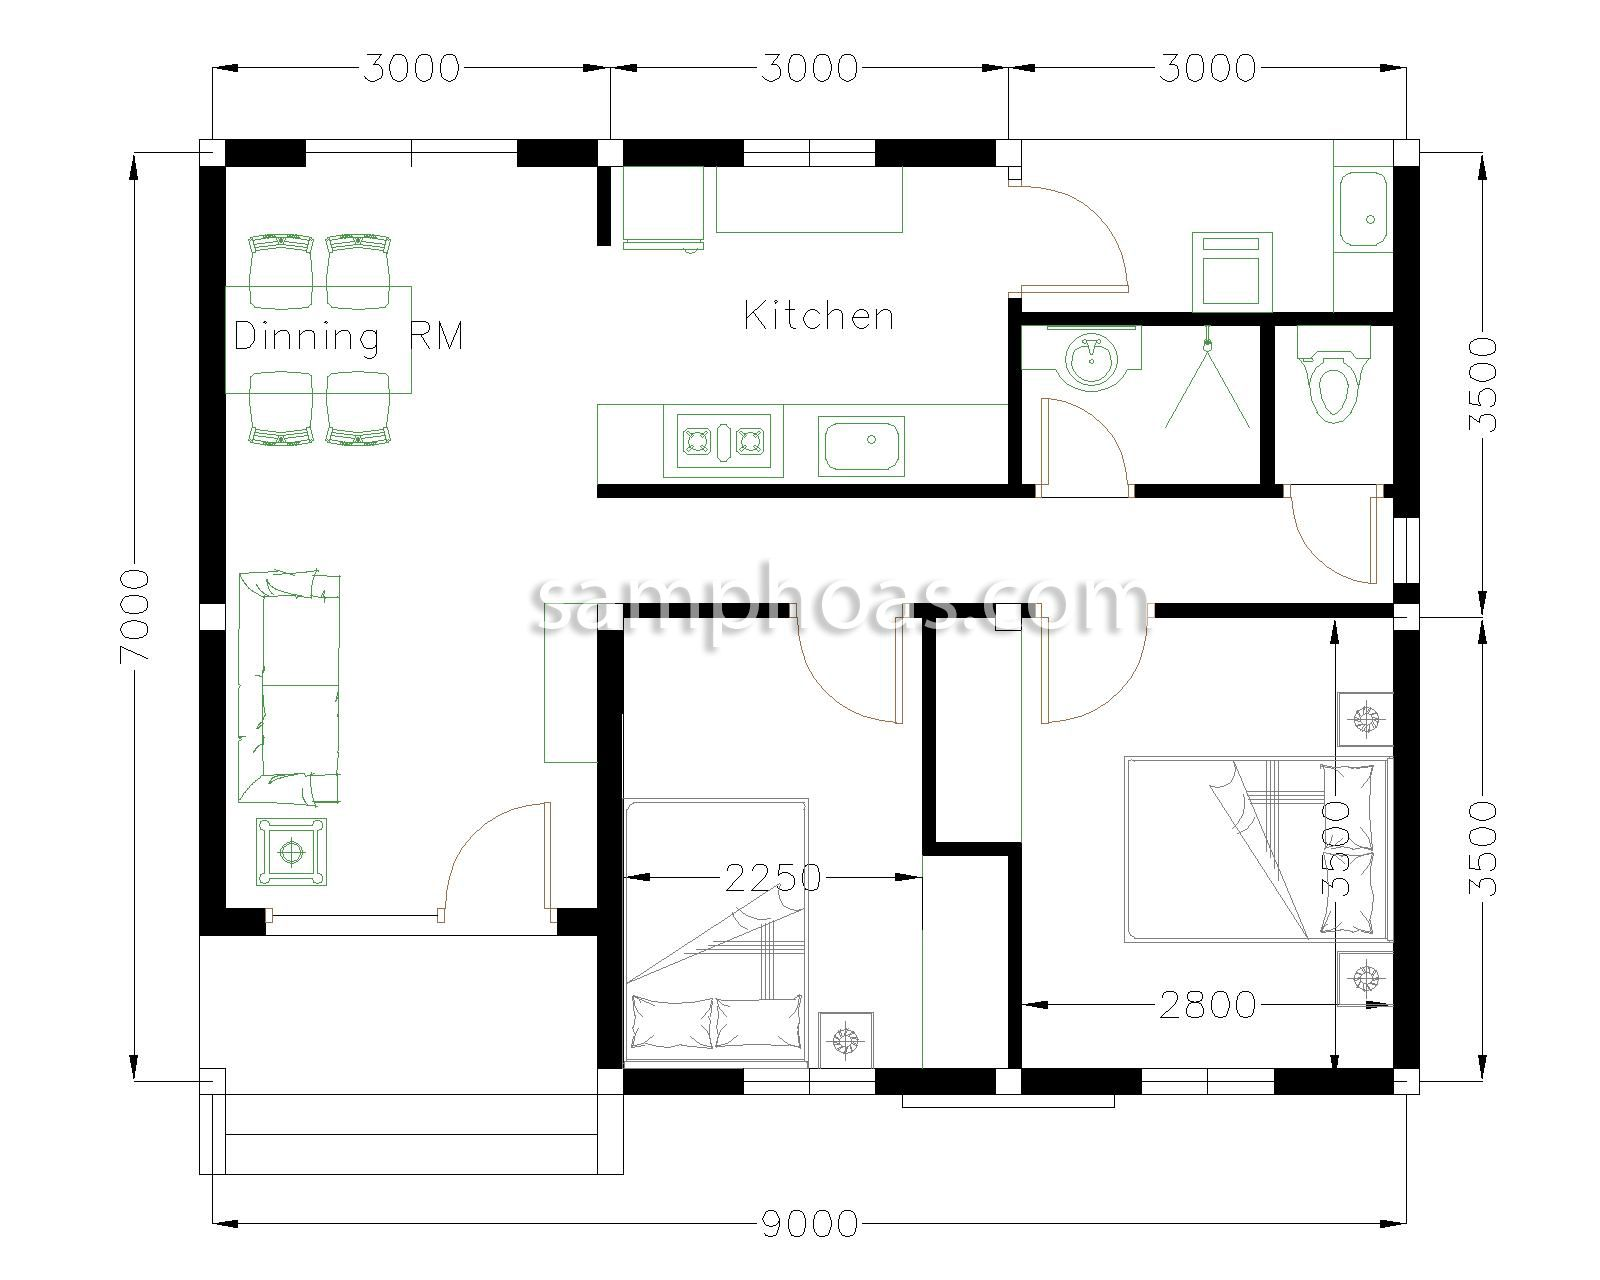 House Plans 9x7m With 2 Bedrooms House Plans Free Downloads Bedroom House Plans Simple House Plans House Layout Plans